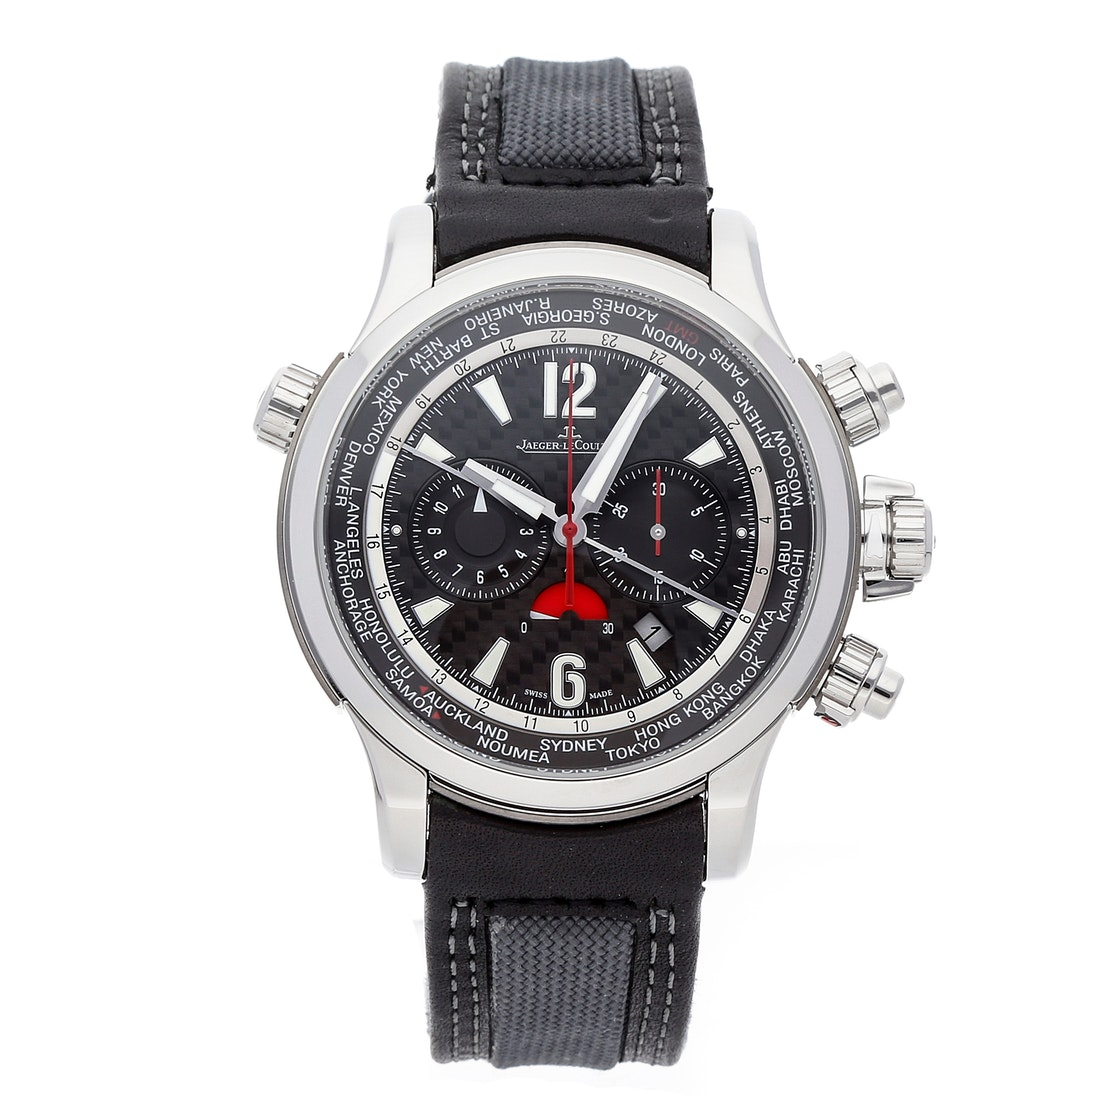 Jaeger-LeCoultre Master Compressor Extreme World Chronograph Limited Edition Q1768451